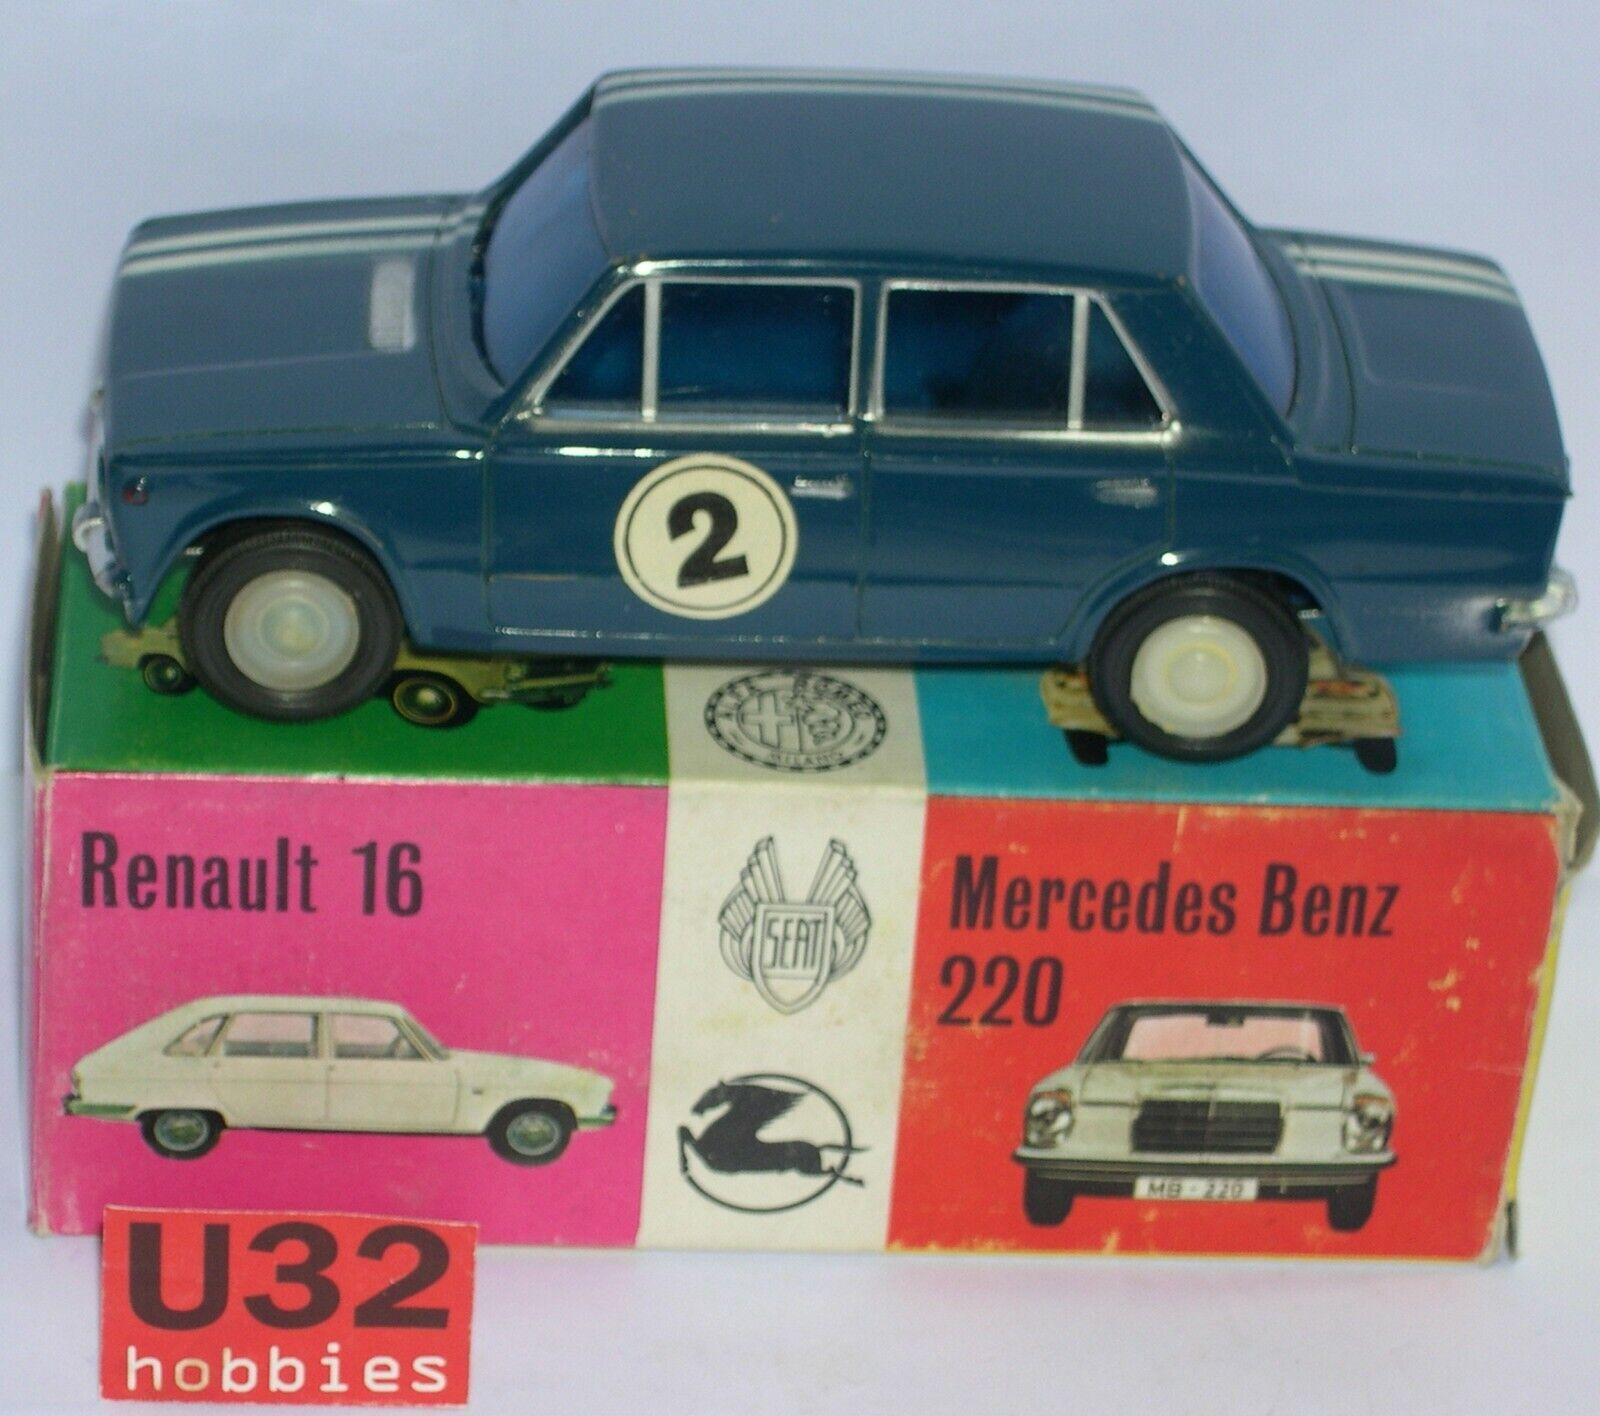 Vercor 419c seat 124 bluee Body and Chassis tin year'60 EXC. Condition